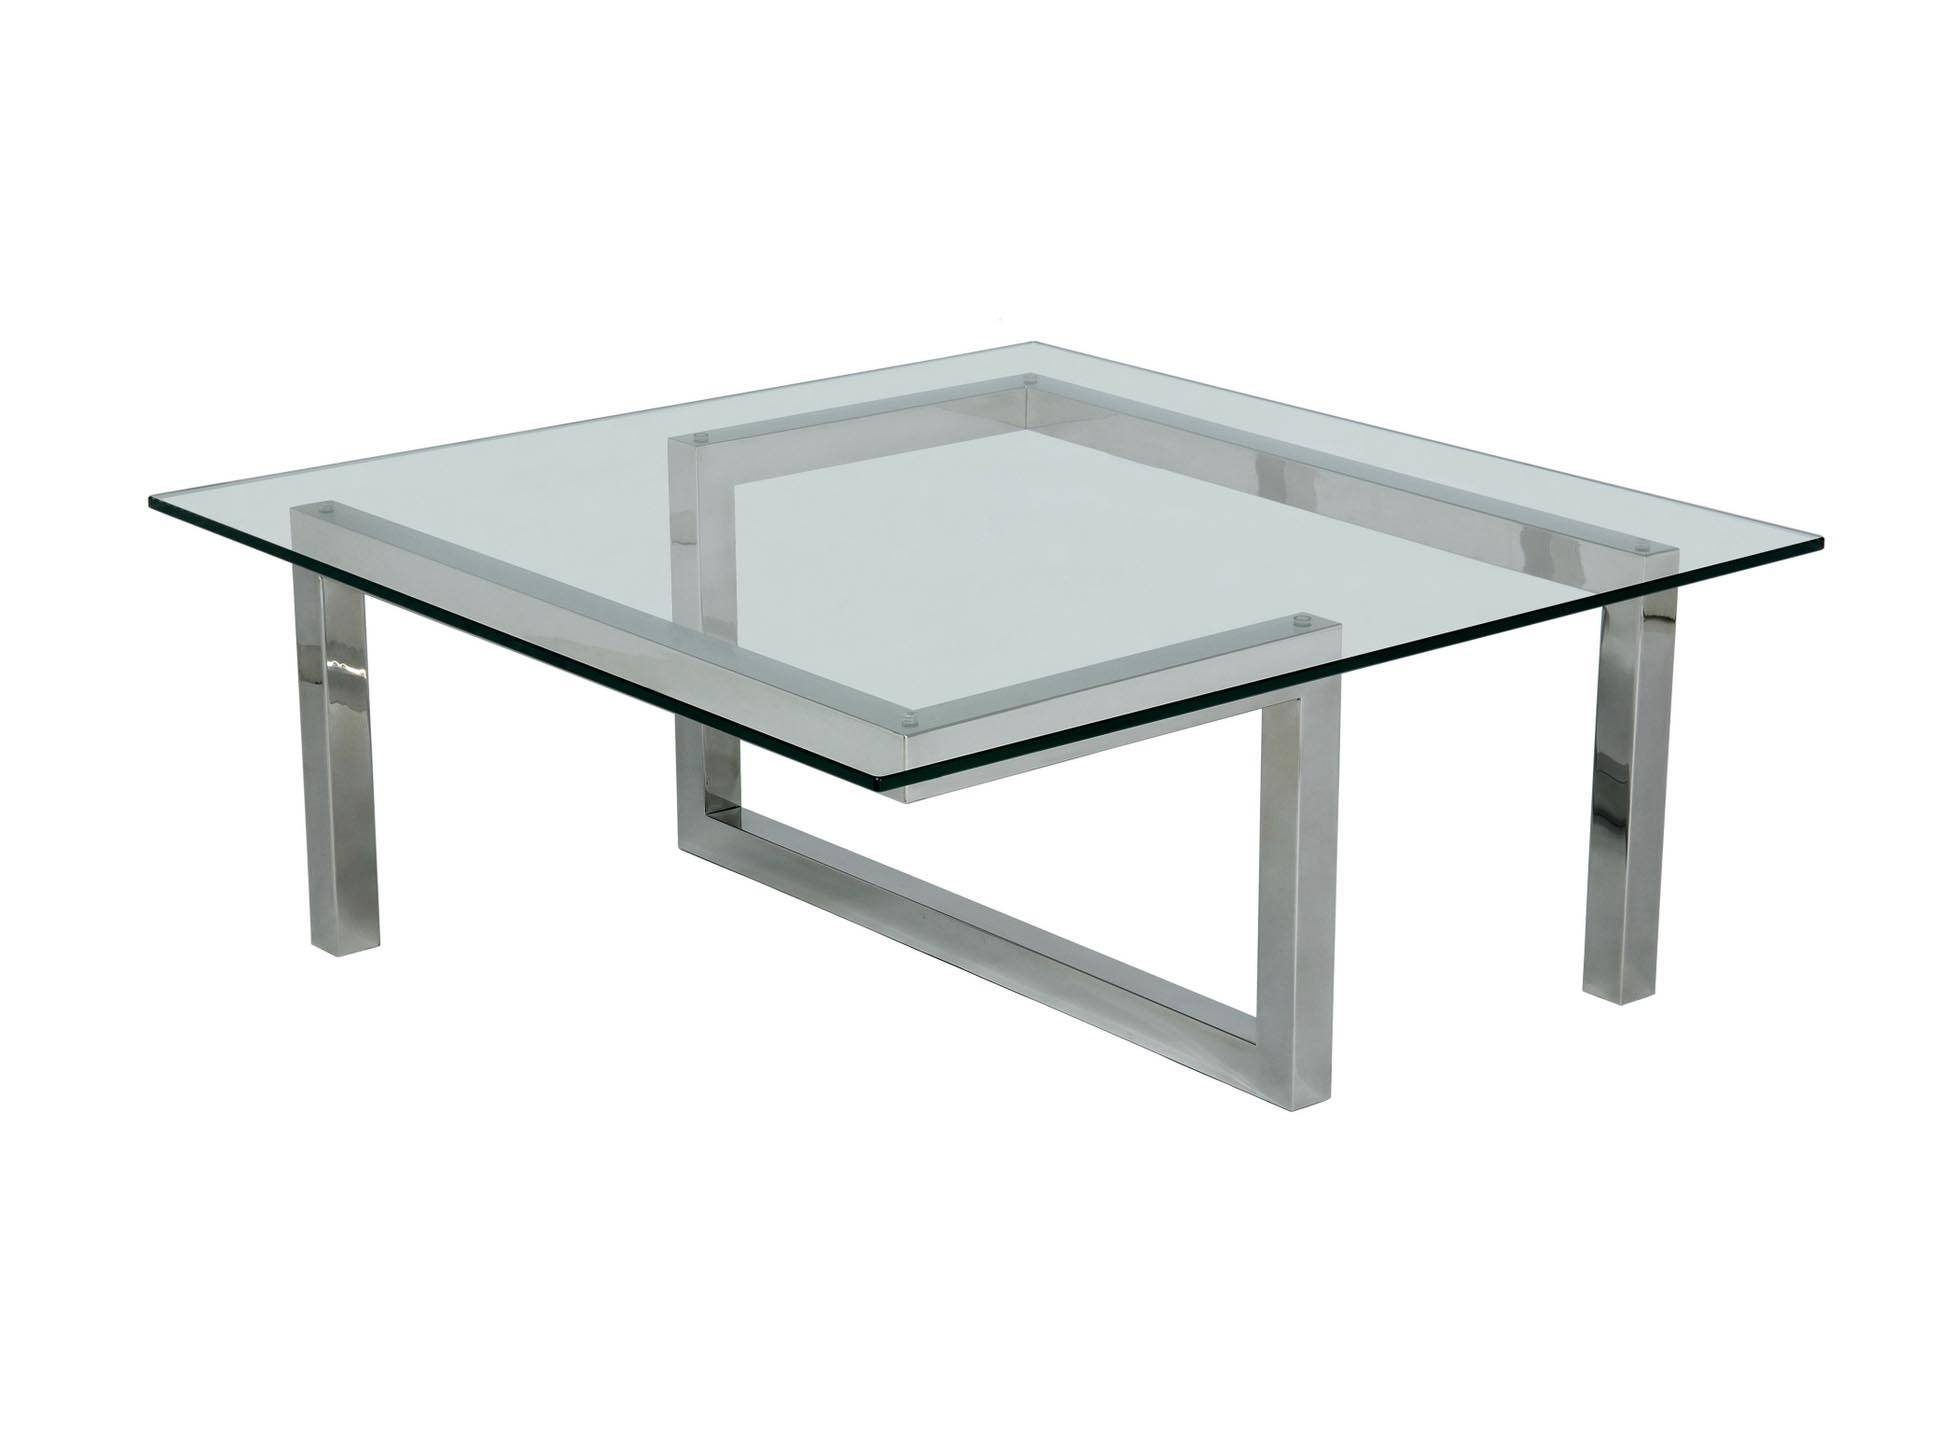 Stainless Steel And Glass Coffee Tables | Coffee Table Design Ideas Inside Steel And Glass Coffee Tables (View 25 of 30)